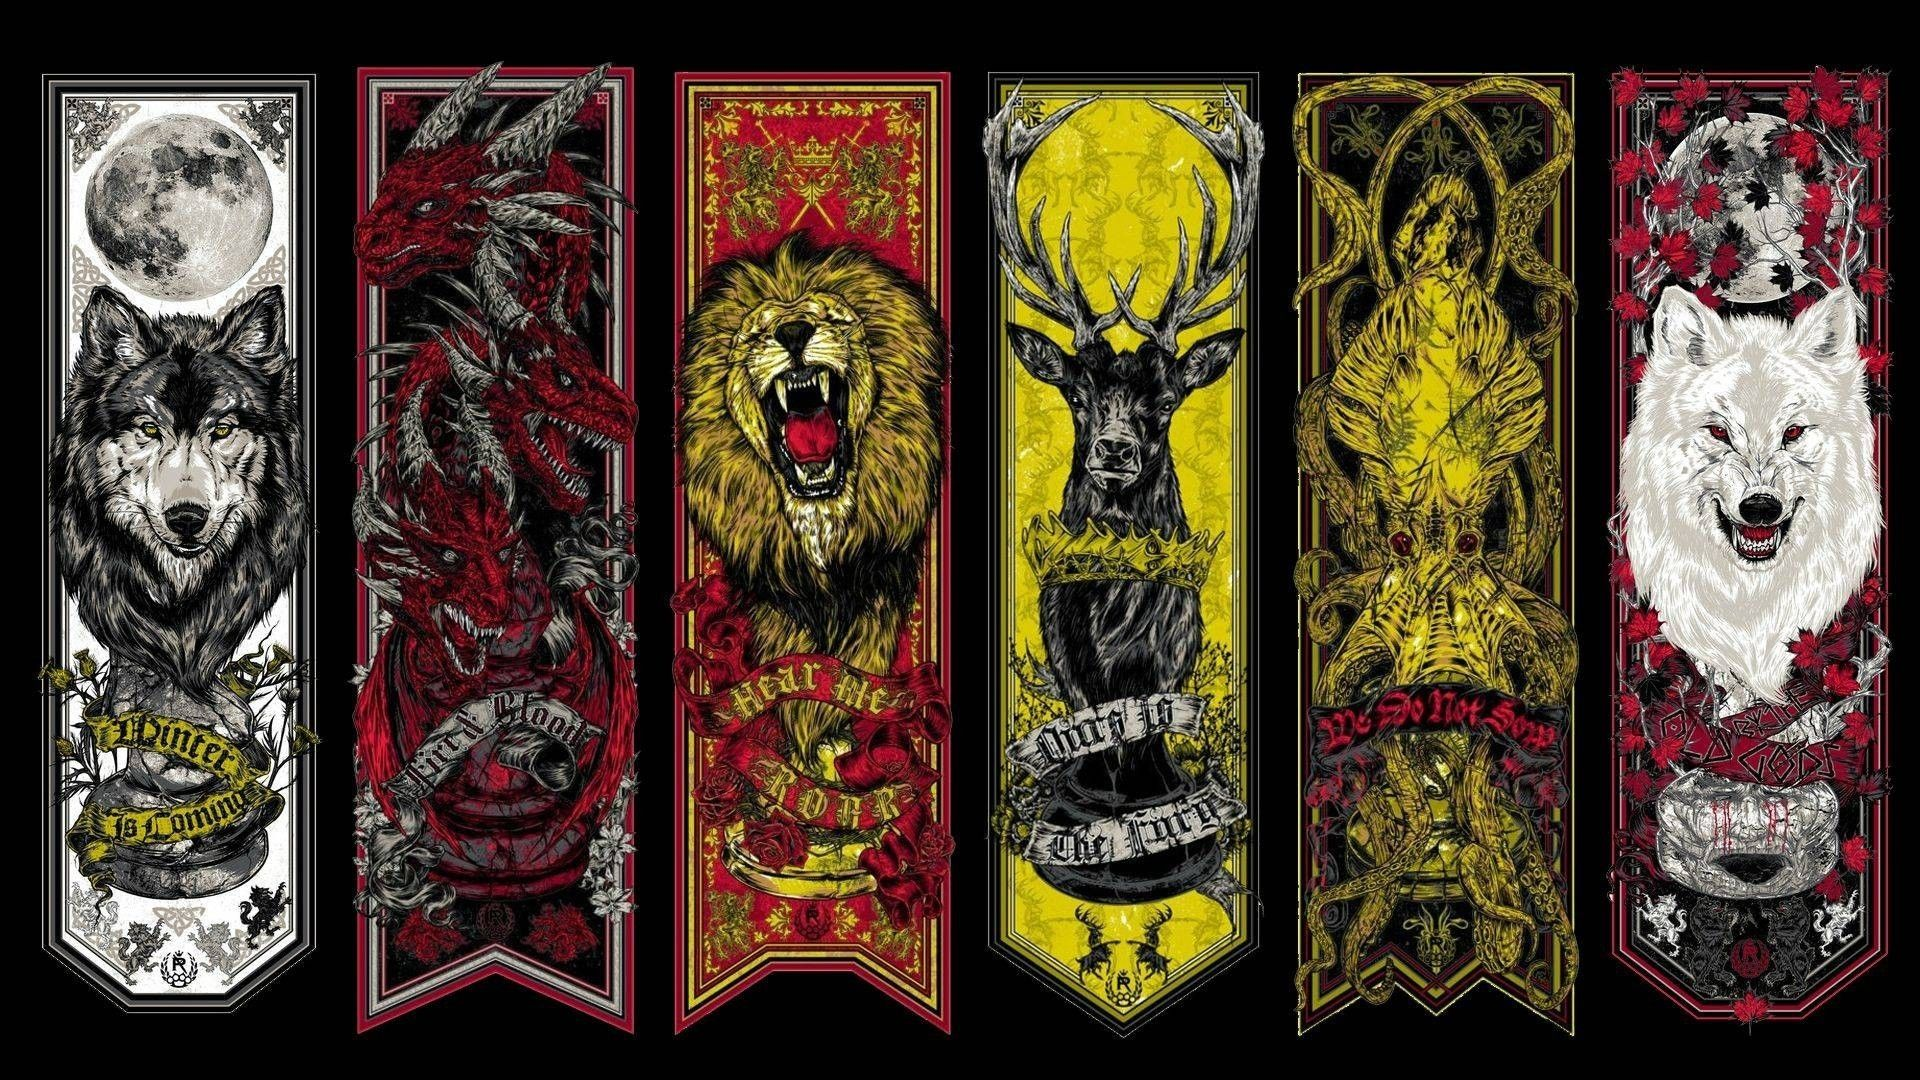 Game of Thrones House Sigils Banners